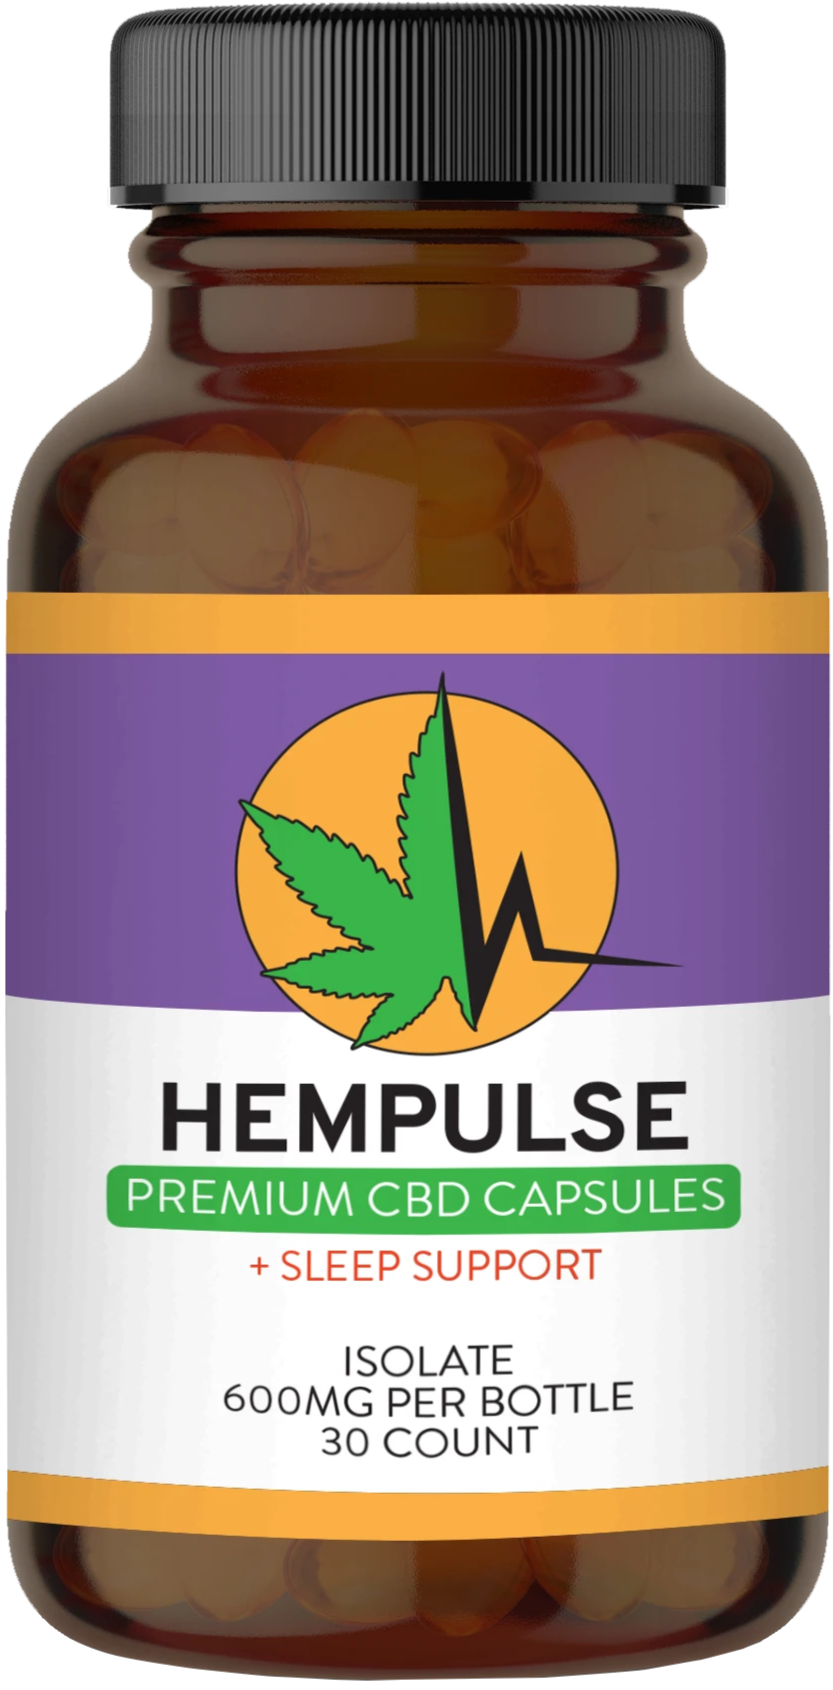 HEMPULSE | CBD Products